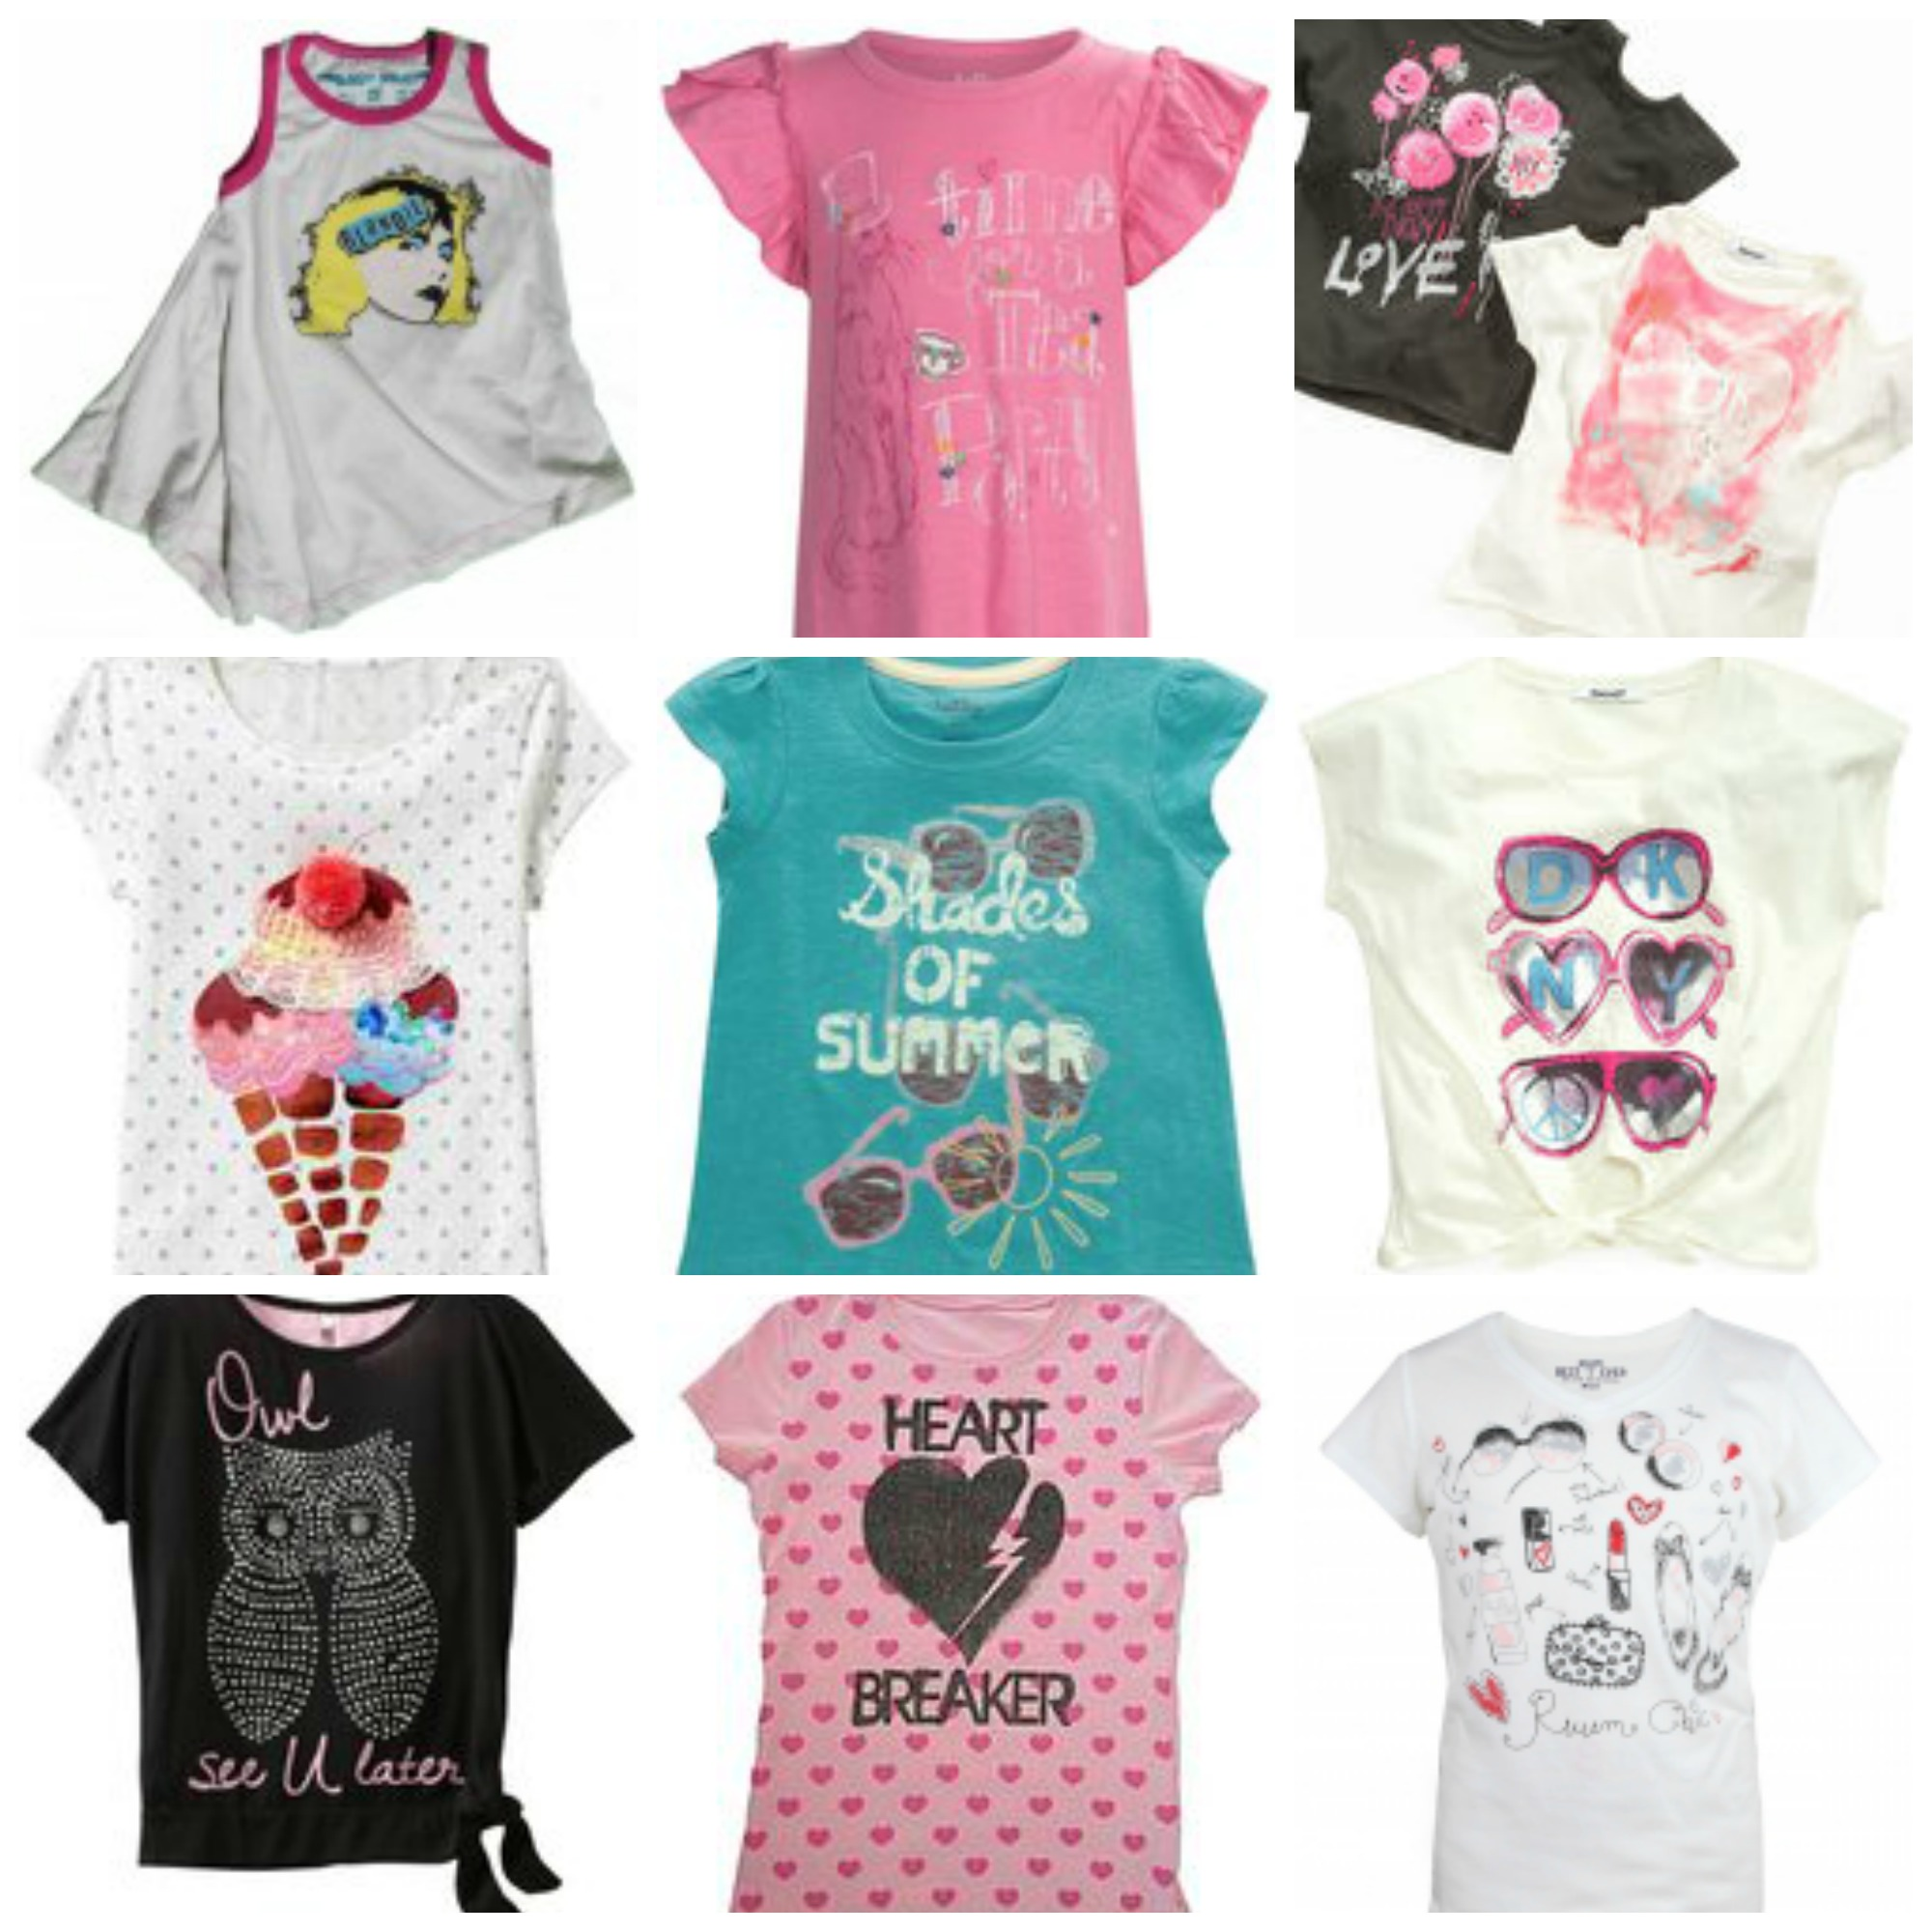 Cute summer shirts